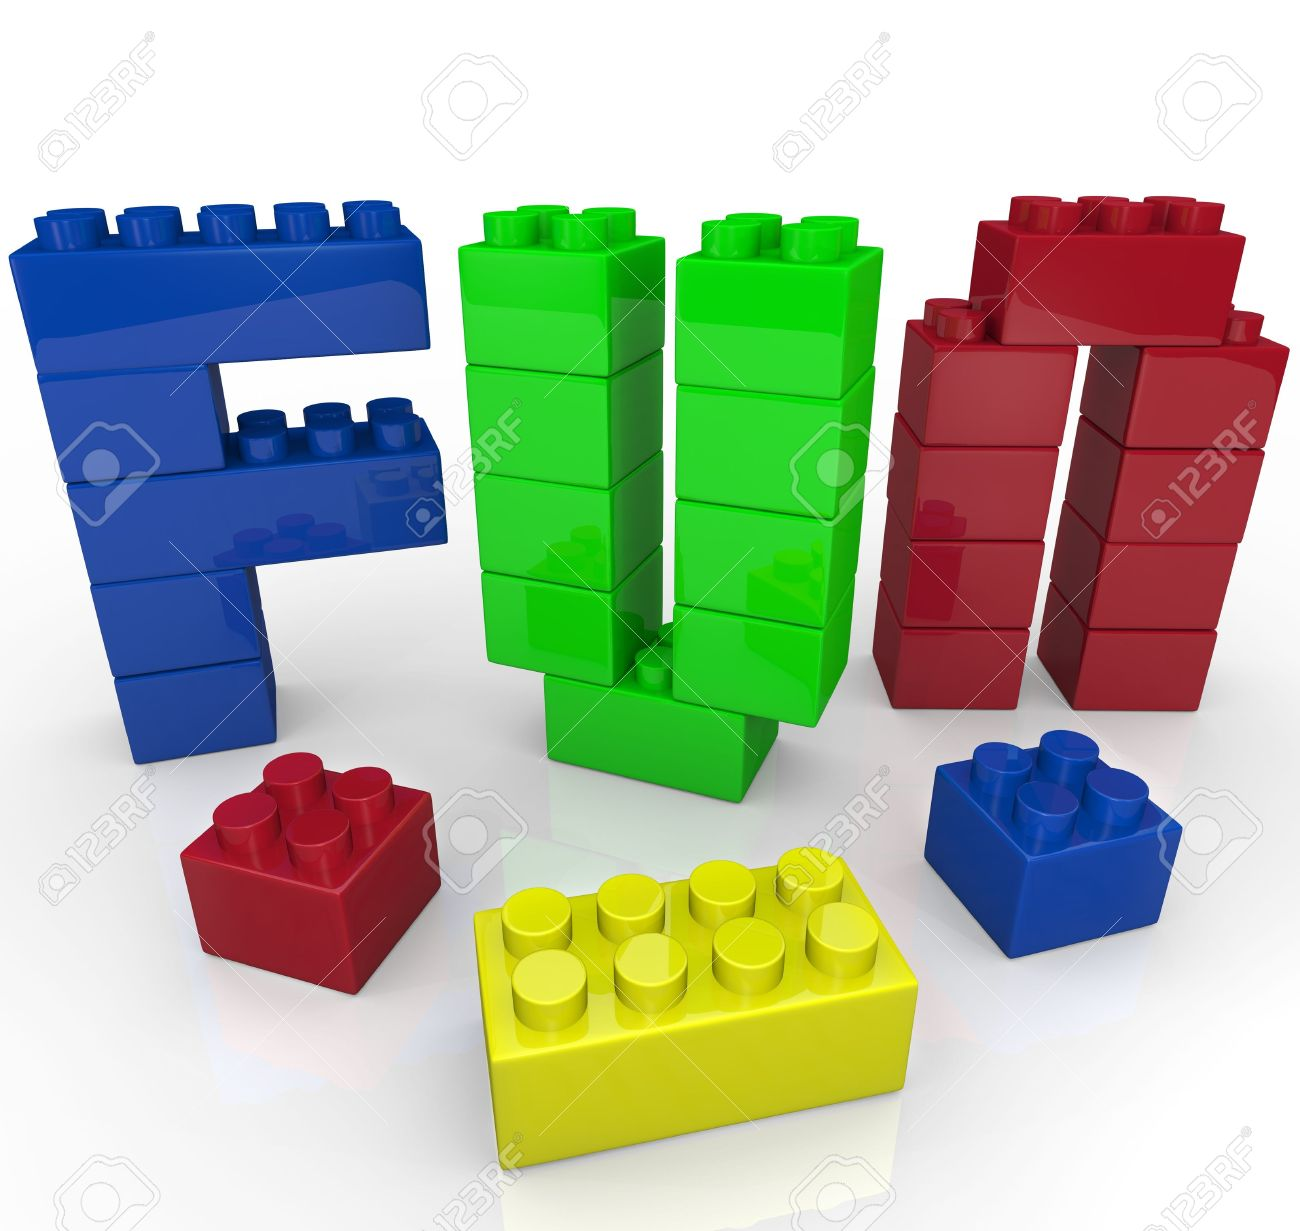 Building blocks game clipart clipart free Building blocks game clipart - ClipartFest clipart free